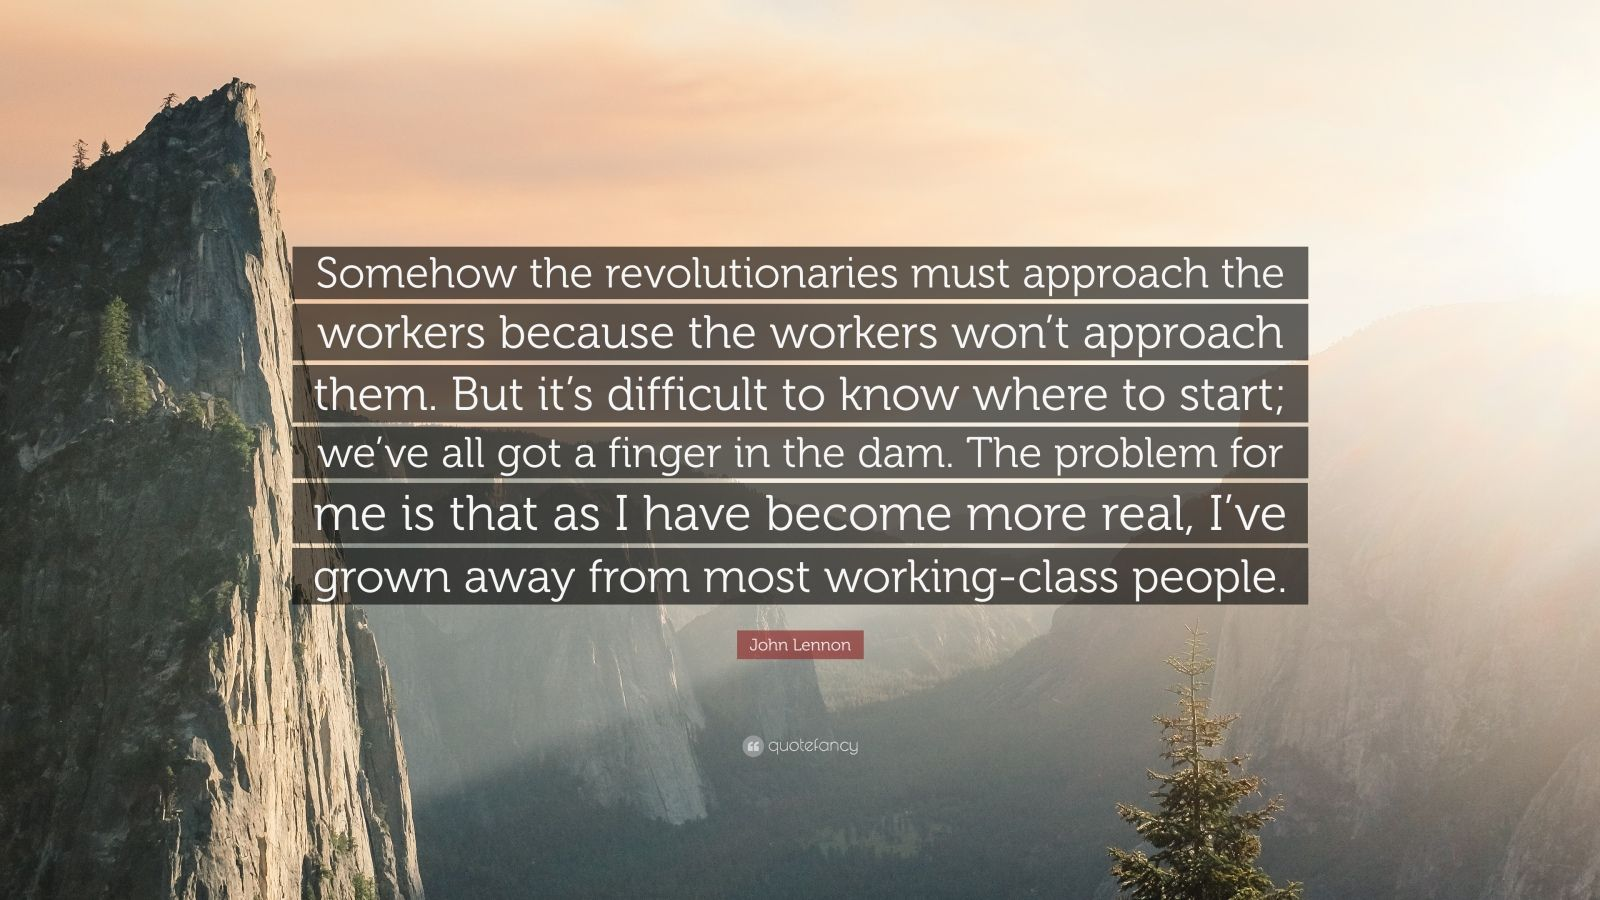 "John Lennon Quote: ""Somehow the revolutionaries must approach the workers because the workers won't approach them. But it's difficult to know where to start; we've all got a finger in the dam. The problem for me is that as I have become more real, I've grown away from most working-class people."""